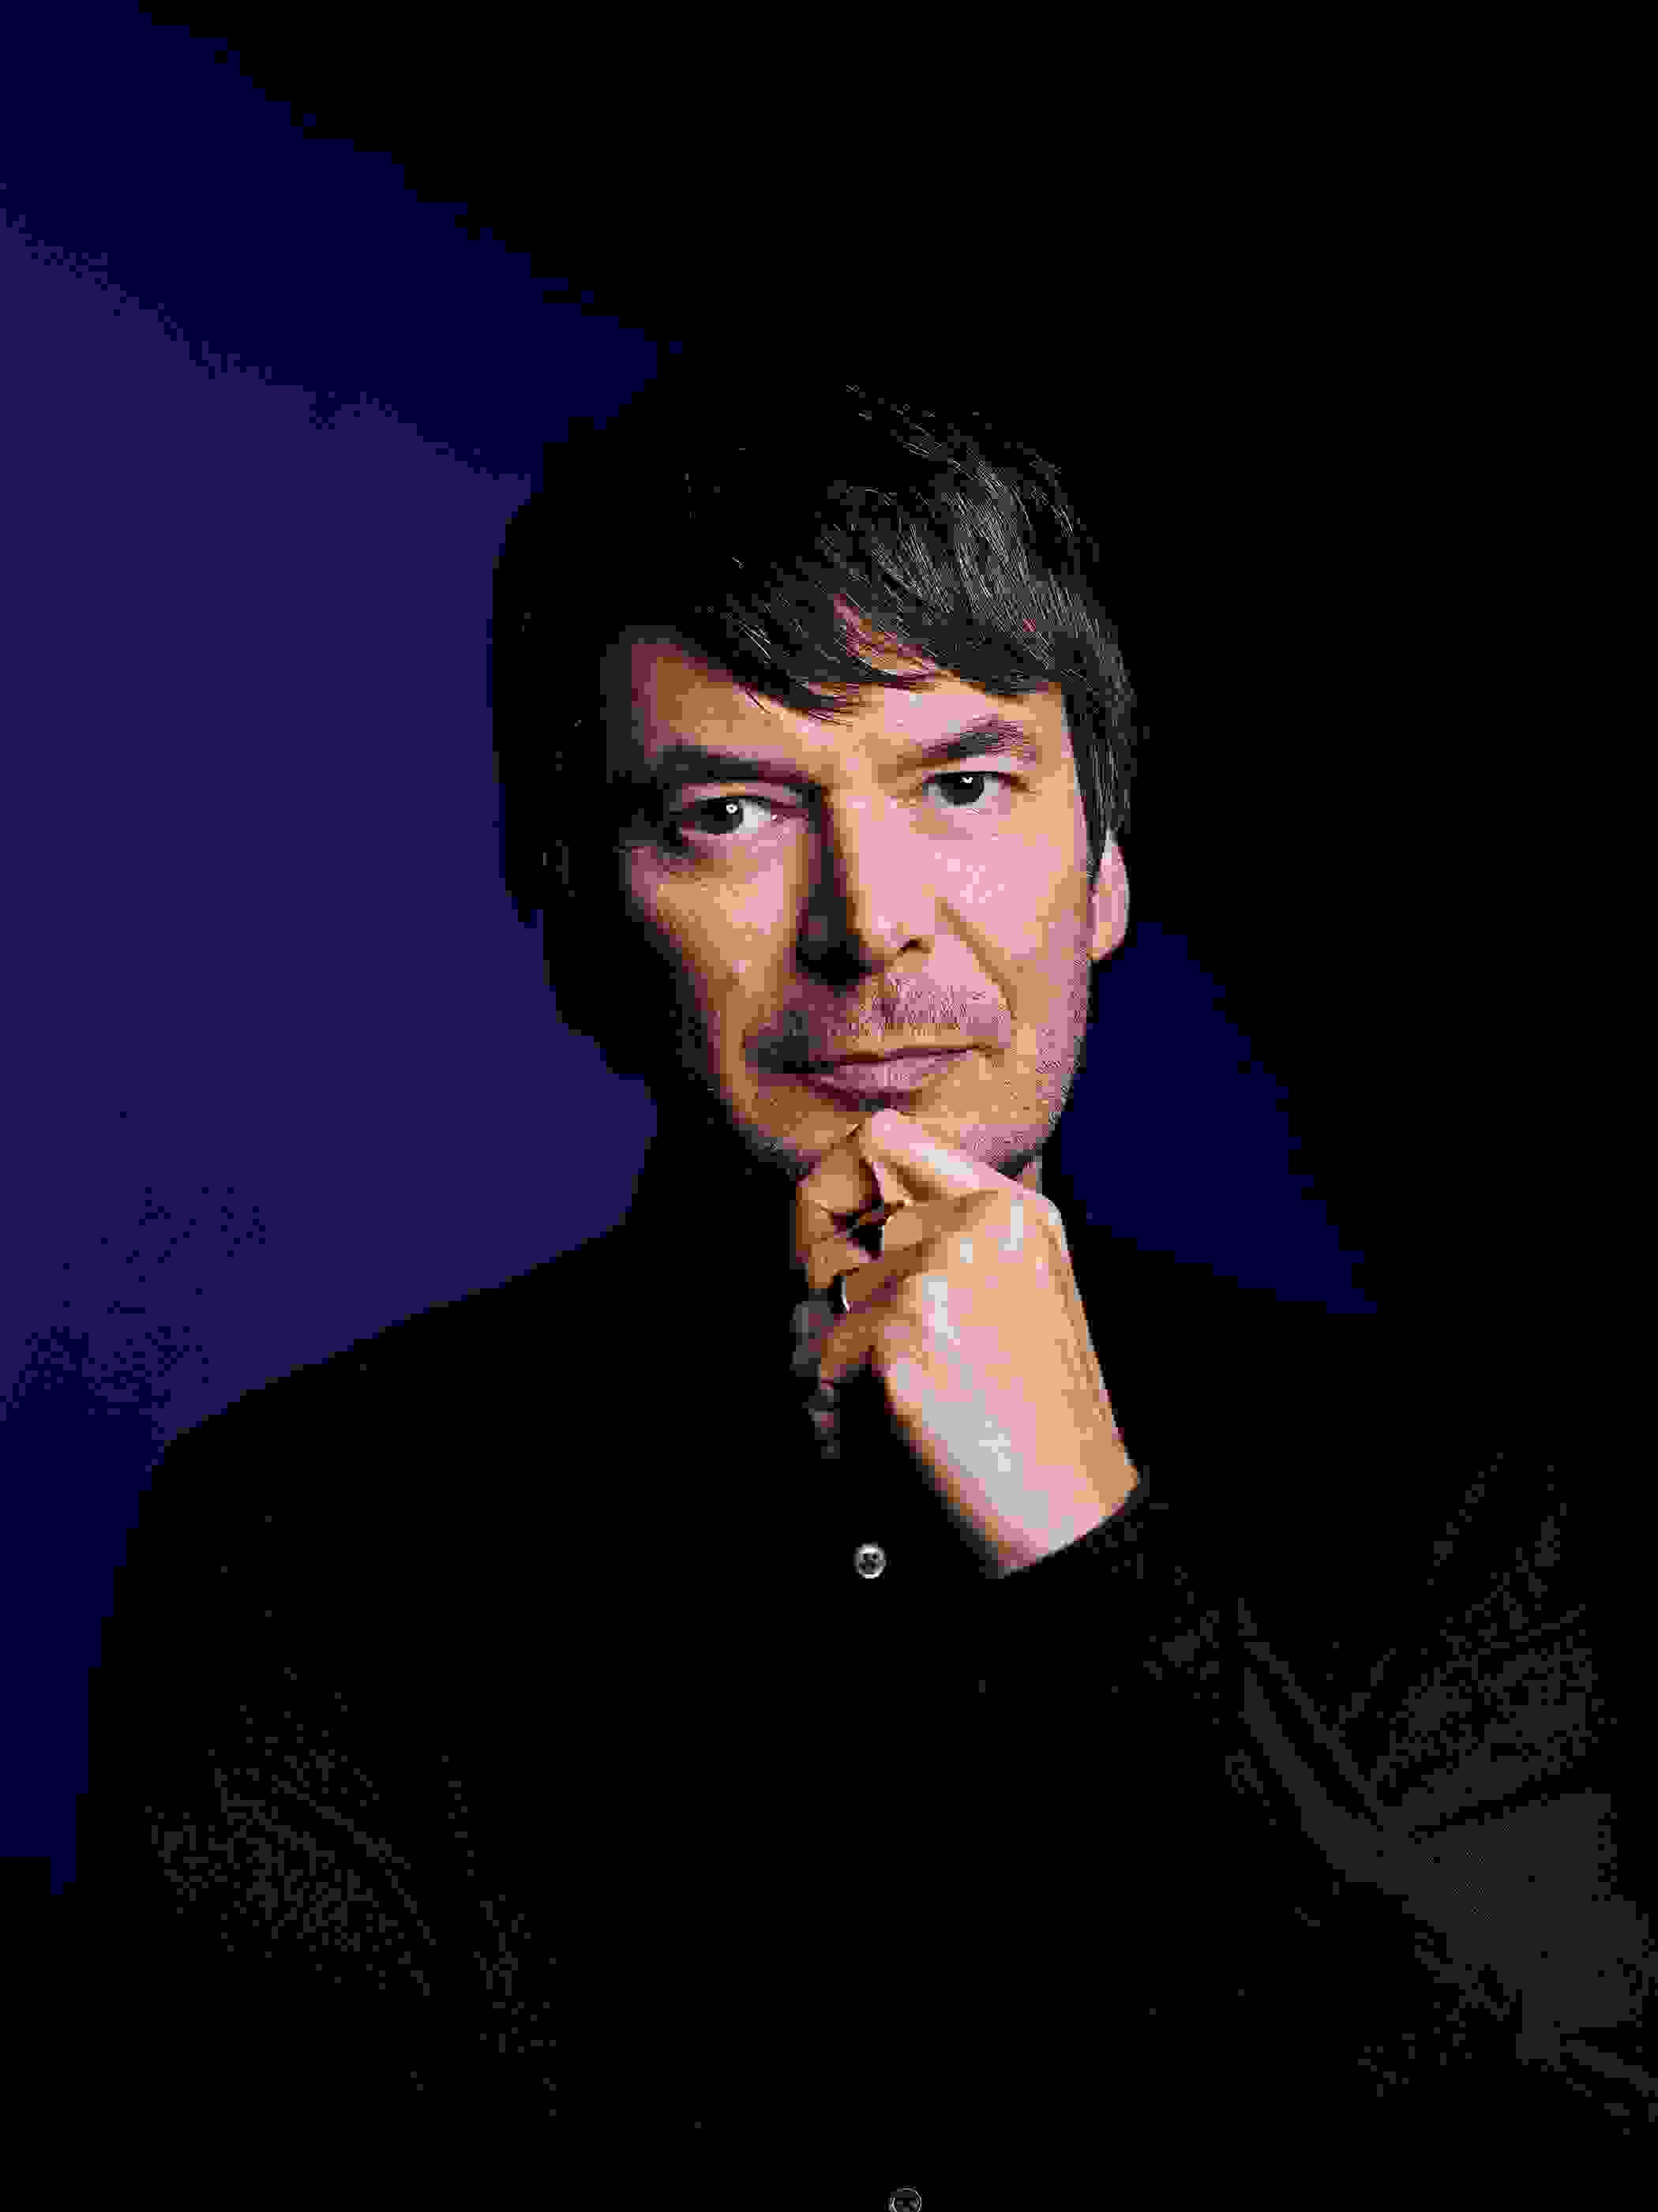 Ian Rankin: Rather Be the Devil (Parramatta)